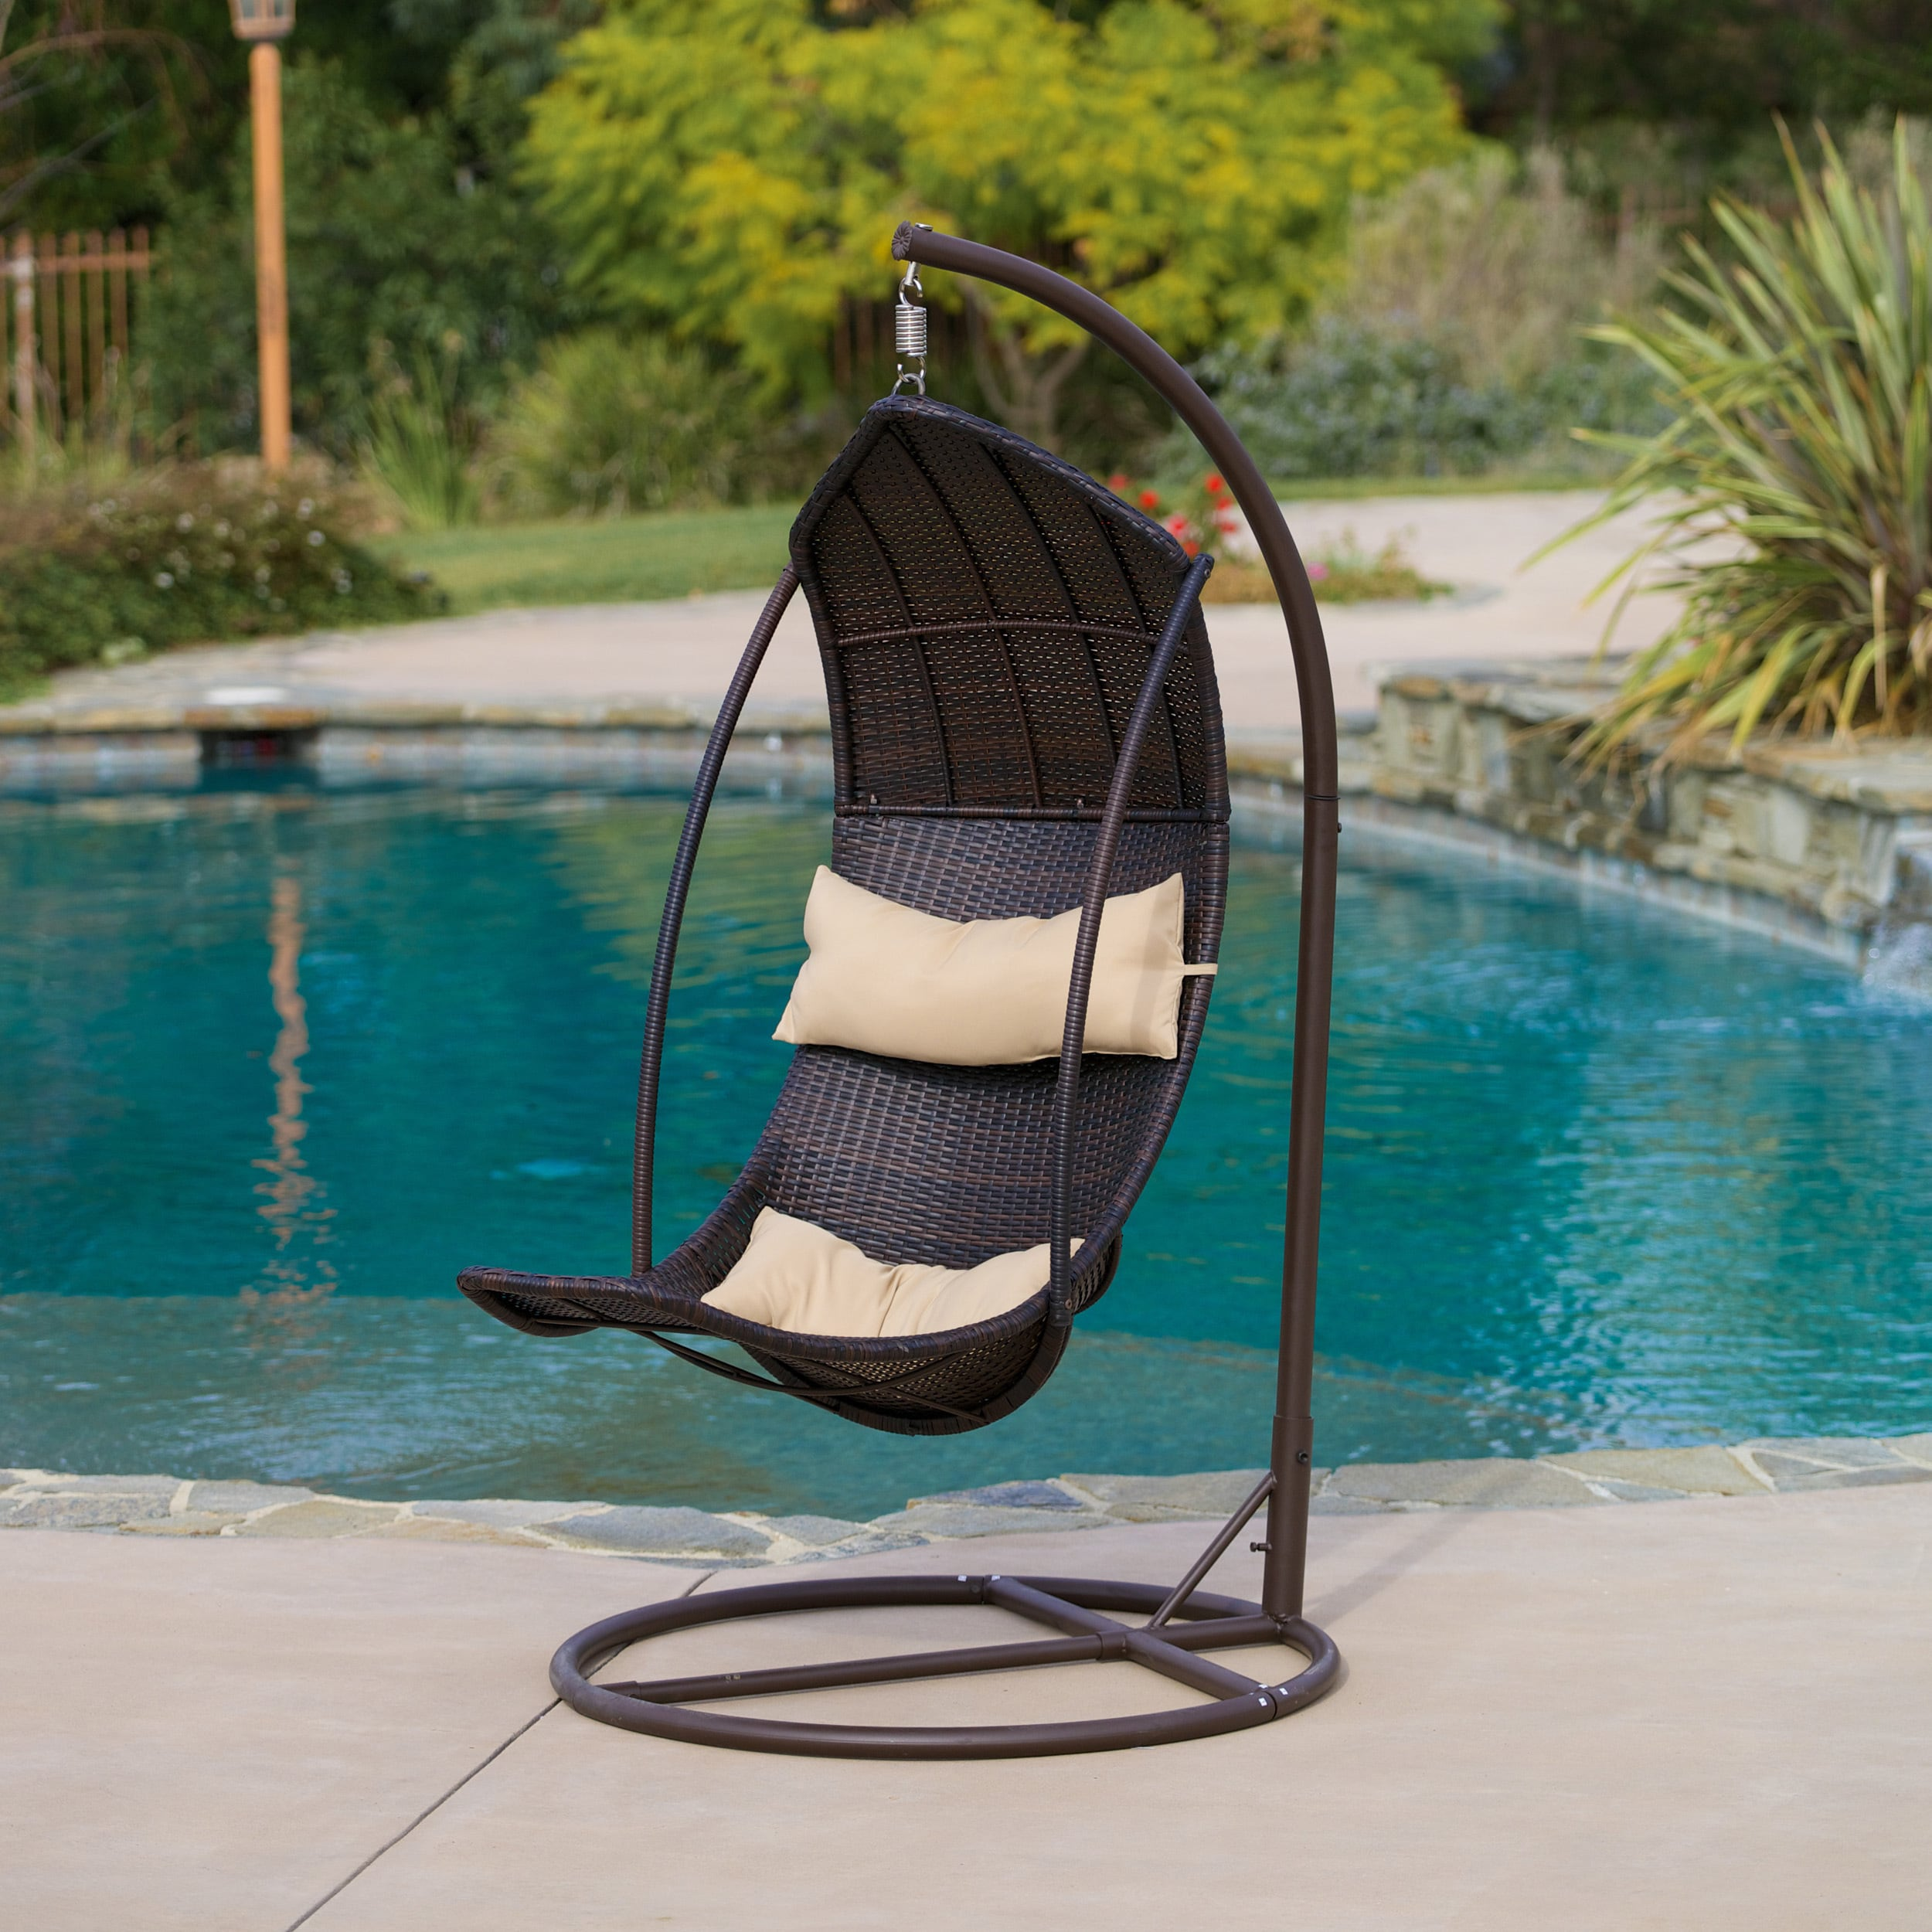 Beautiful Outdoor Brown Wicker Lounge Chair By Christopher Knight Home   Free  Shipping Today   Overstock.com   16023229